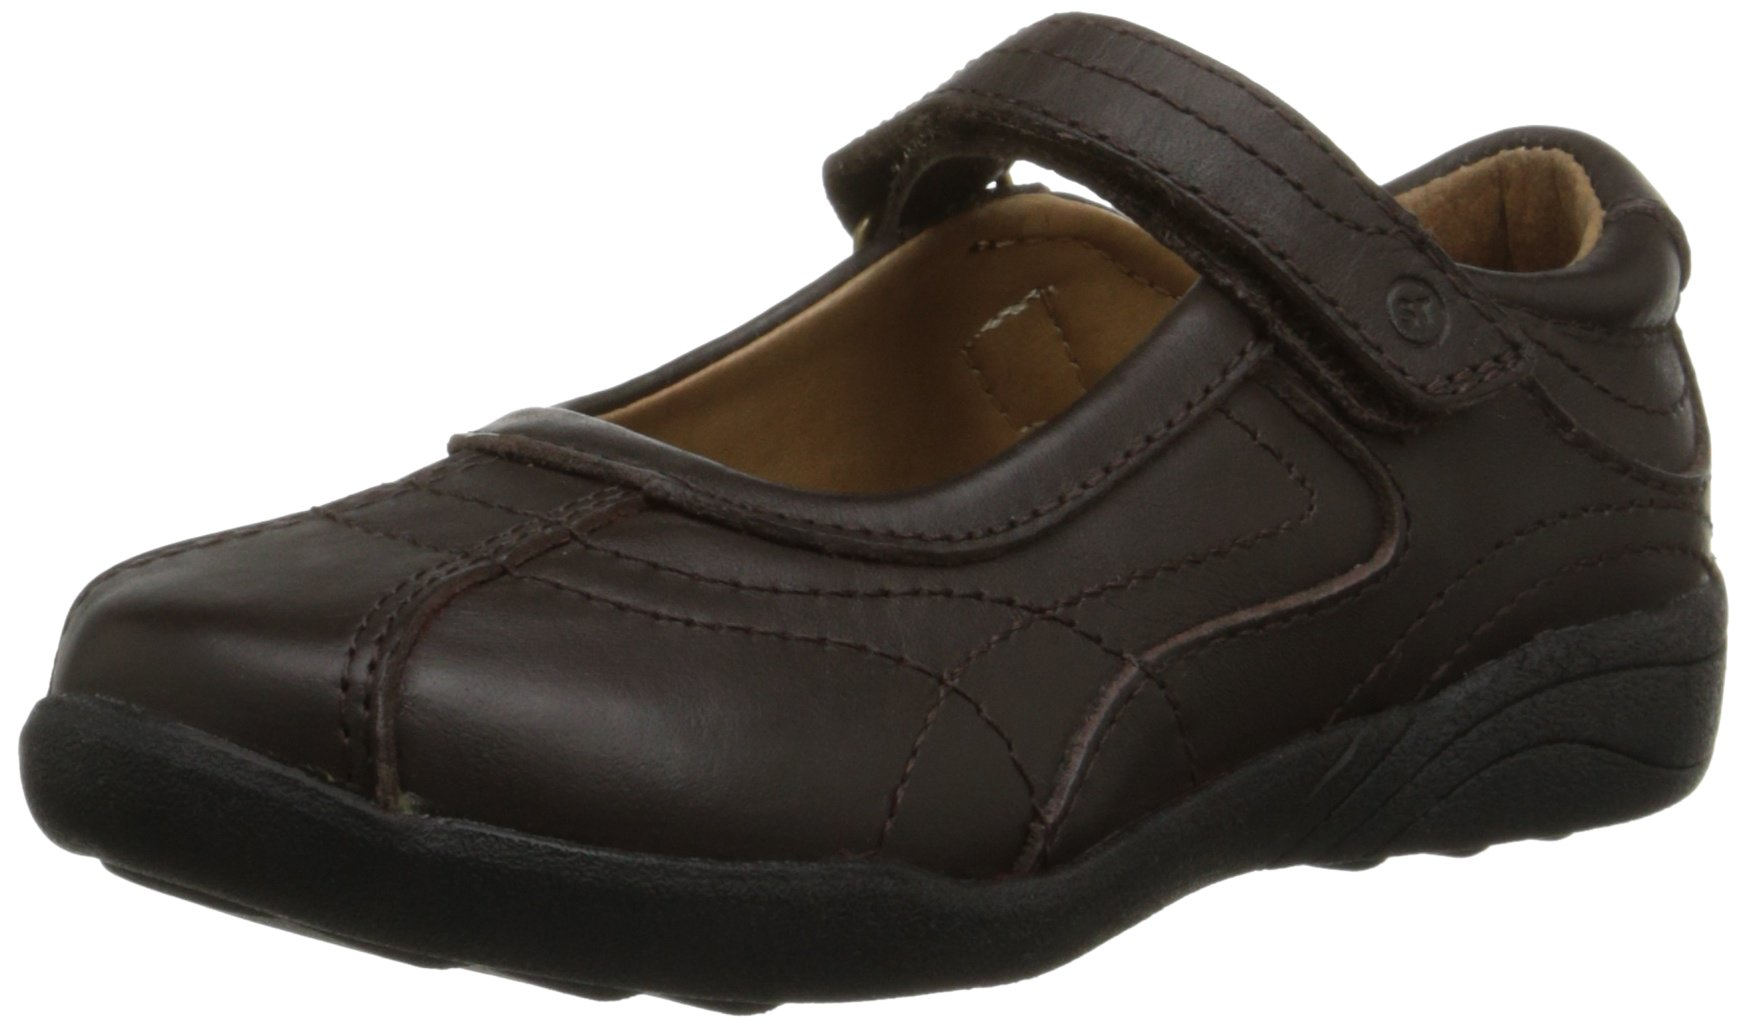 Stride Rite Claire Mary Jane (Toddler/Little Kid/Big Kid),Brown,13 M US Little Kid by Stride Rite (Image #1)